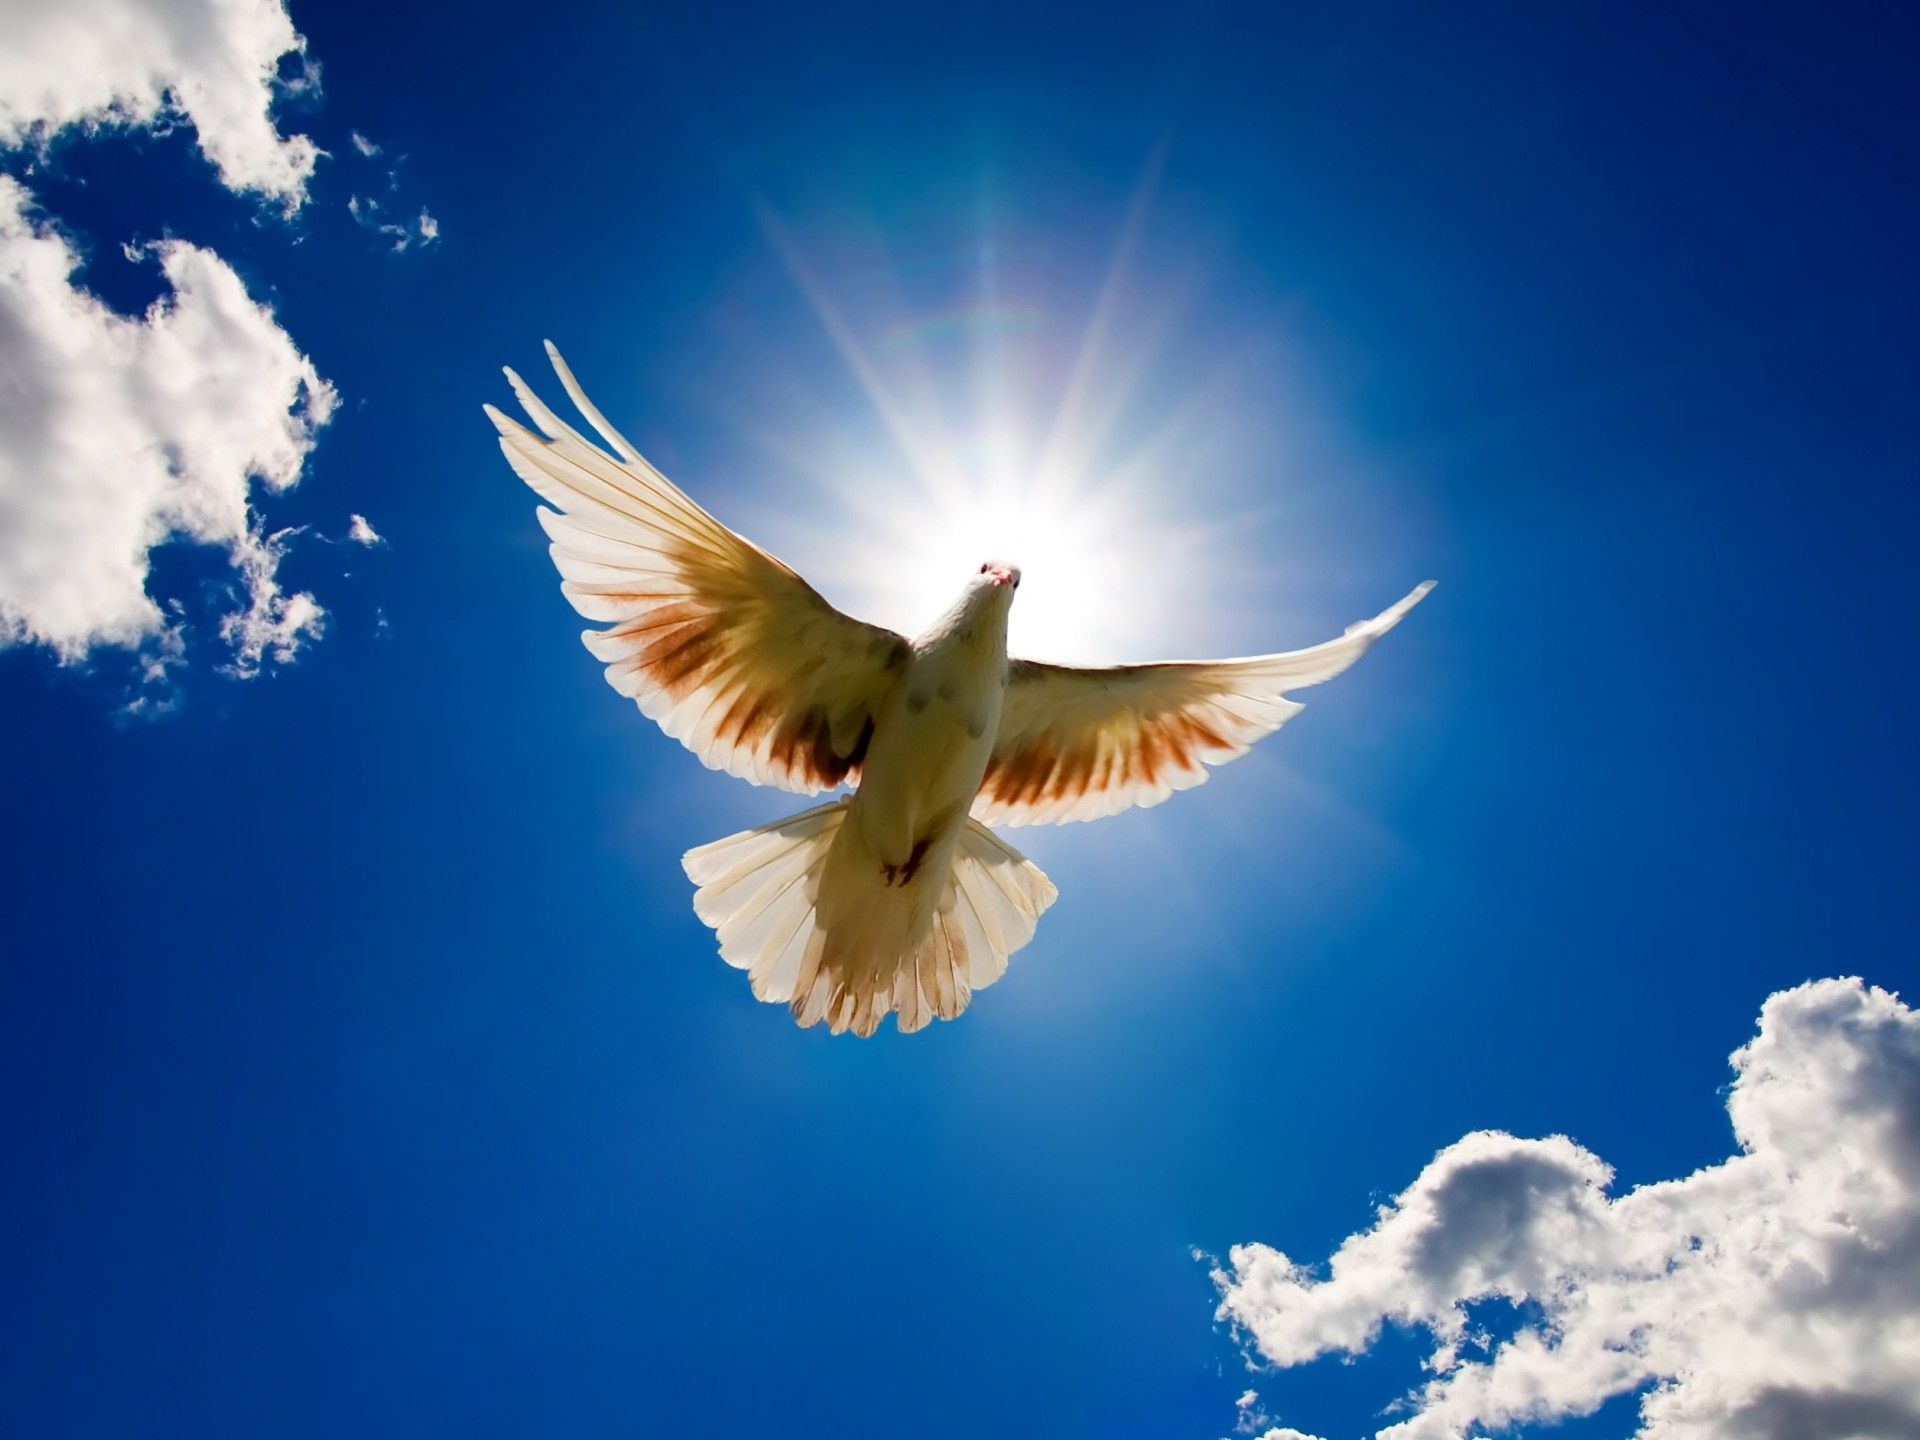 pictures of the sun in the sky dove bird from the sky when it